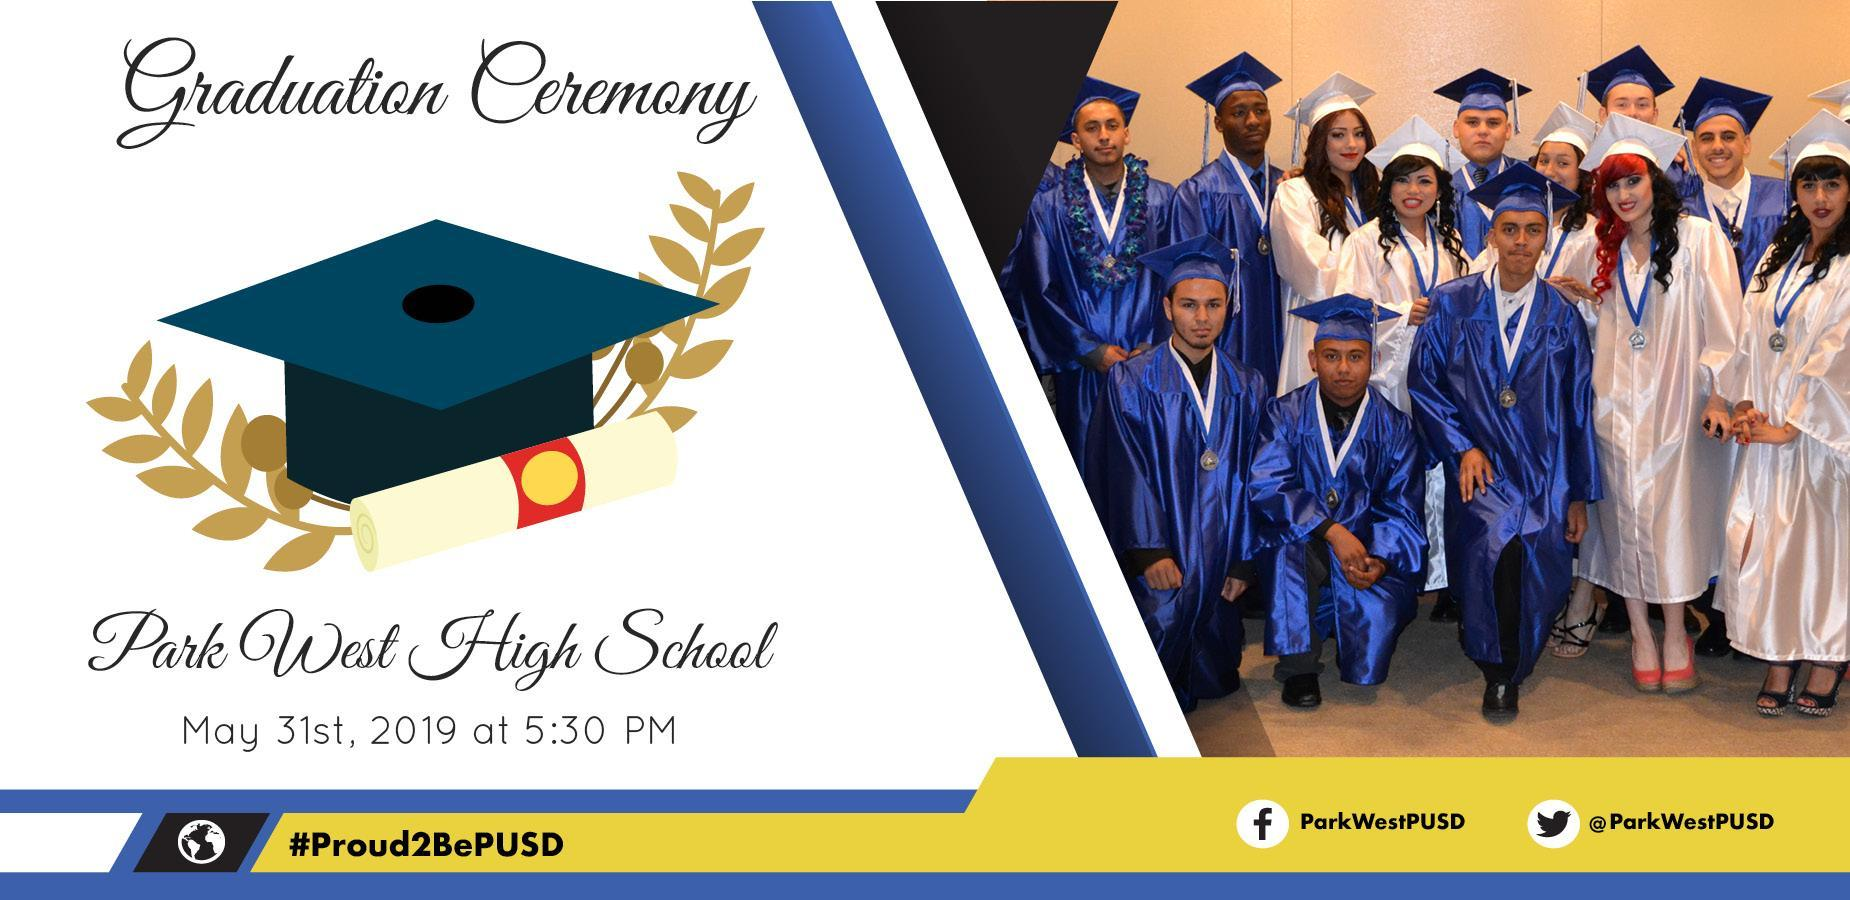 Park West High School: May 31st, 2019 at 5:30 pm